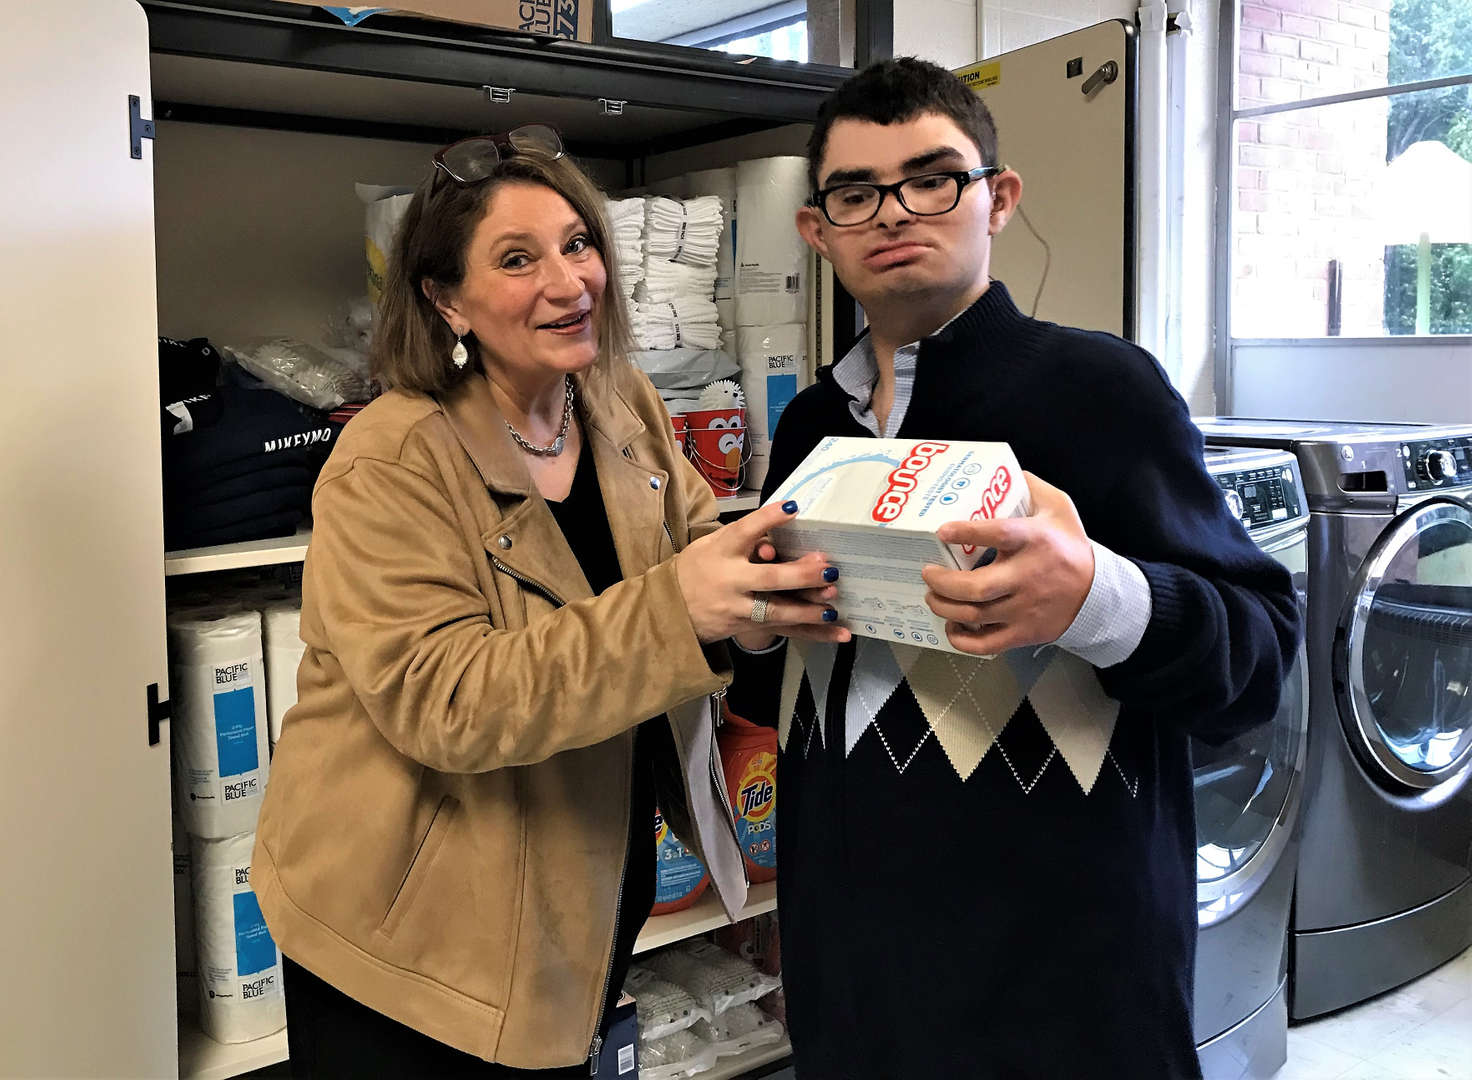 A male student and his mother pose in front of a supply cabinet in the laundry room.